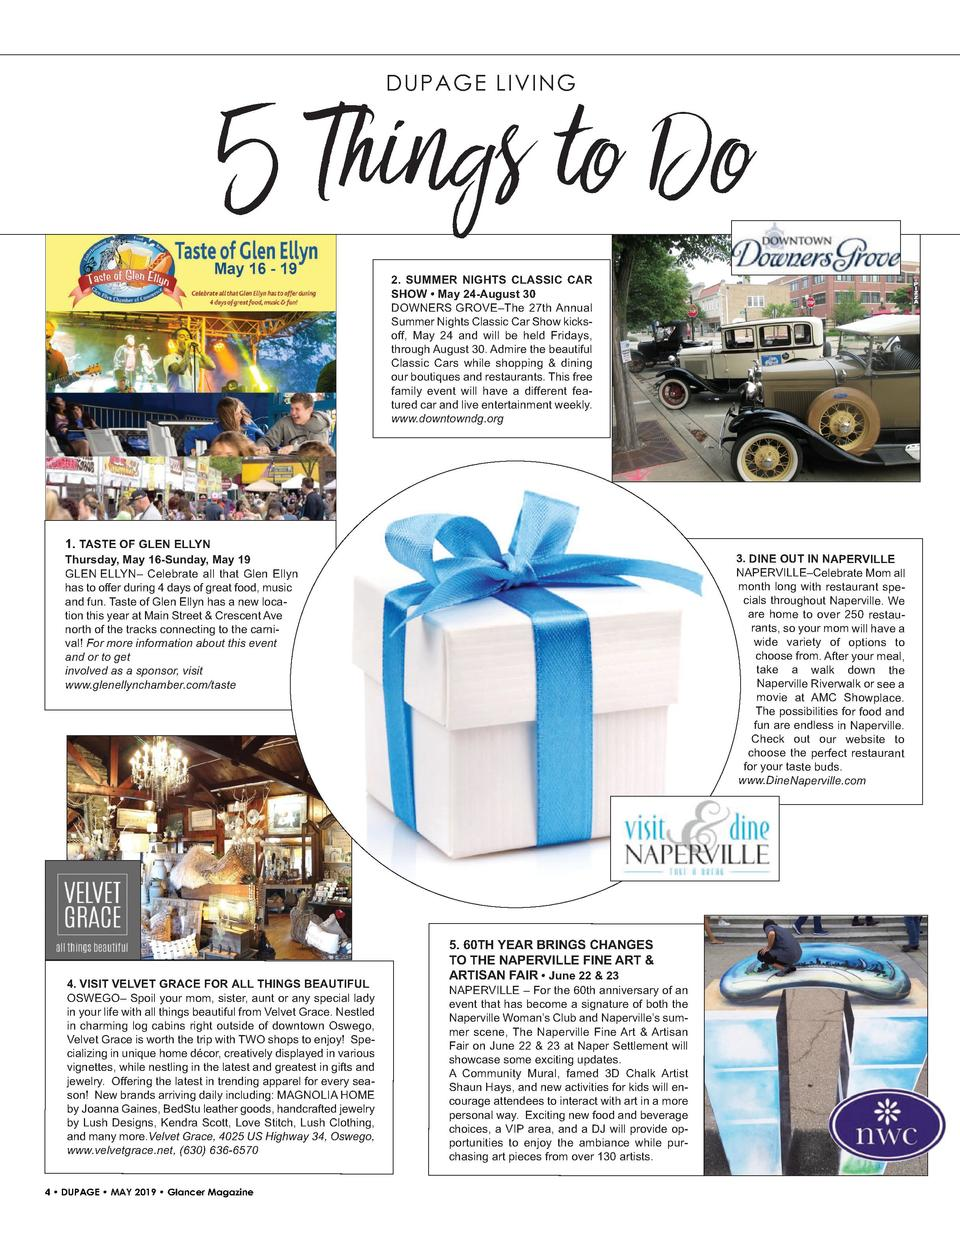 5 Things to Do DUPAGE LIVING  2. SUMMER NIGHTS CLASSIC CAR SHOW     May 24-August 30 DOWNERS   GROVE   The 27th Annual Sum...